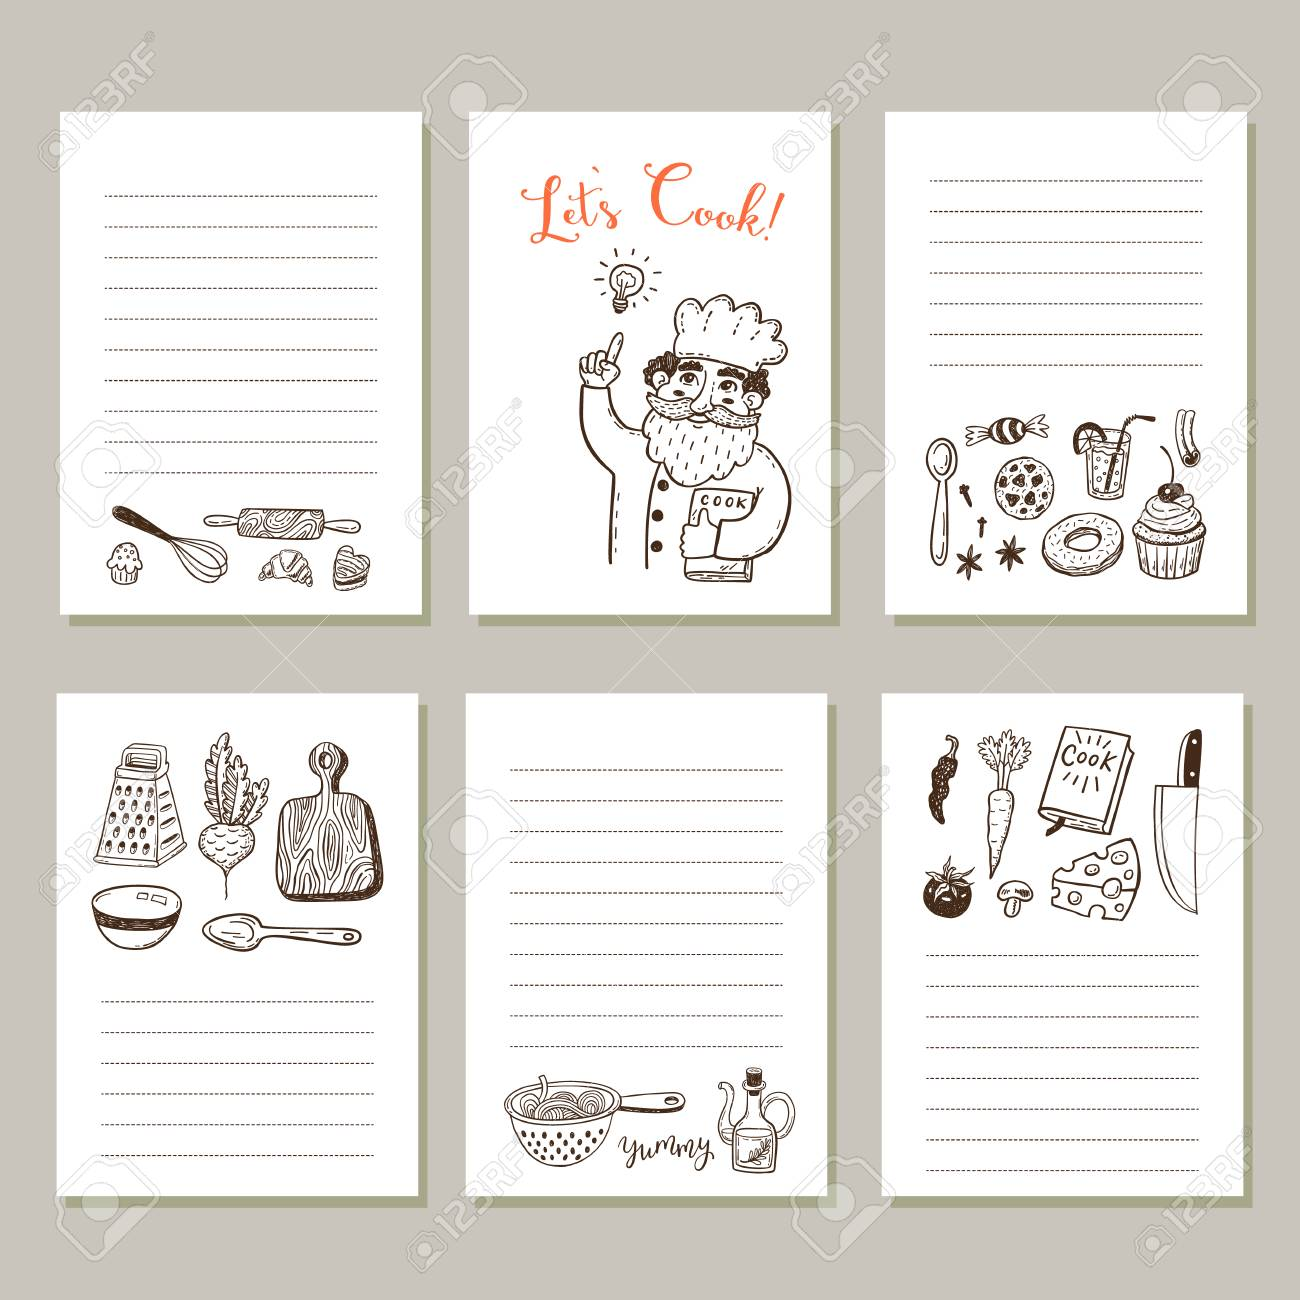 Page Template Set For Notes Or Cooking Recipe Cards With Hand Royalty Free Cliparts Vectors And Stock Illustration Image 94668783